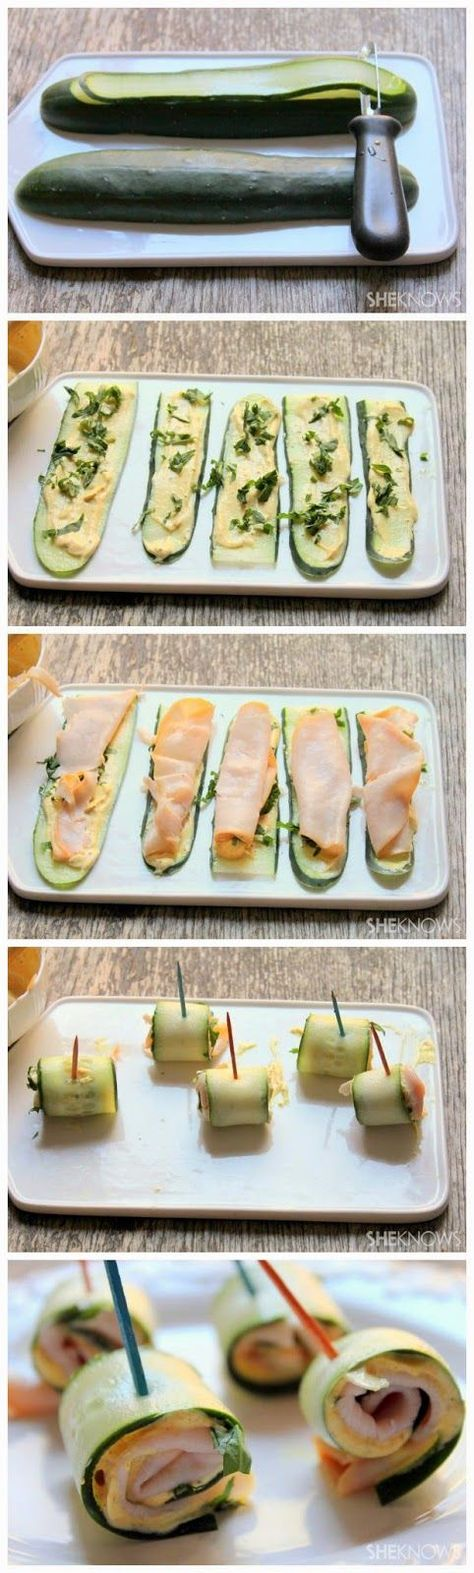 cucumber rollups with hummus and turkey